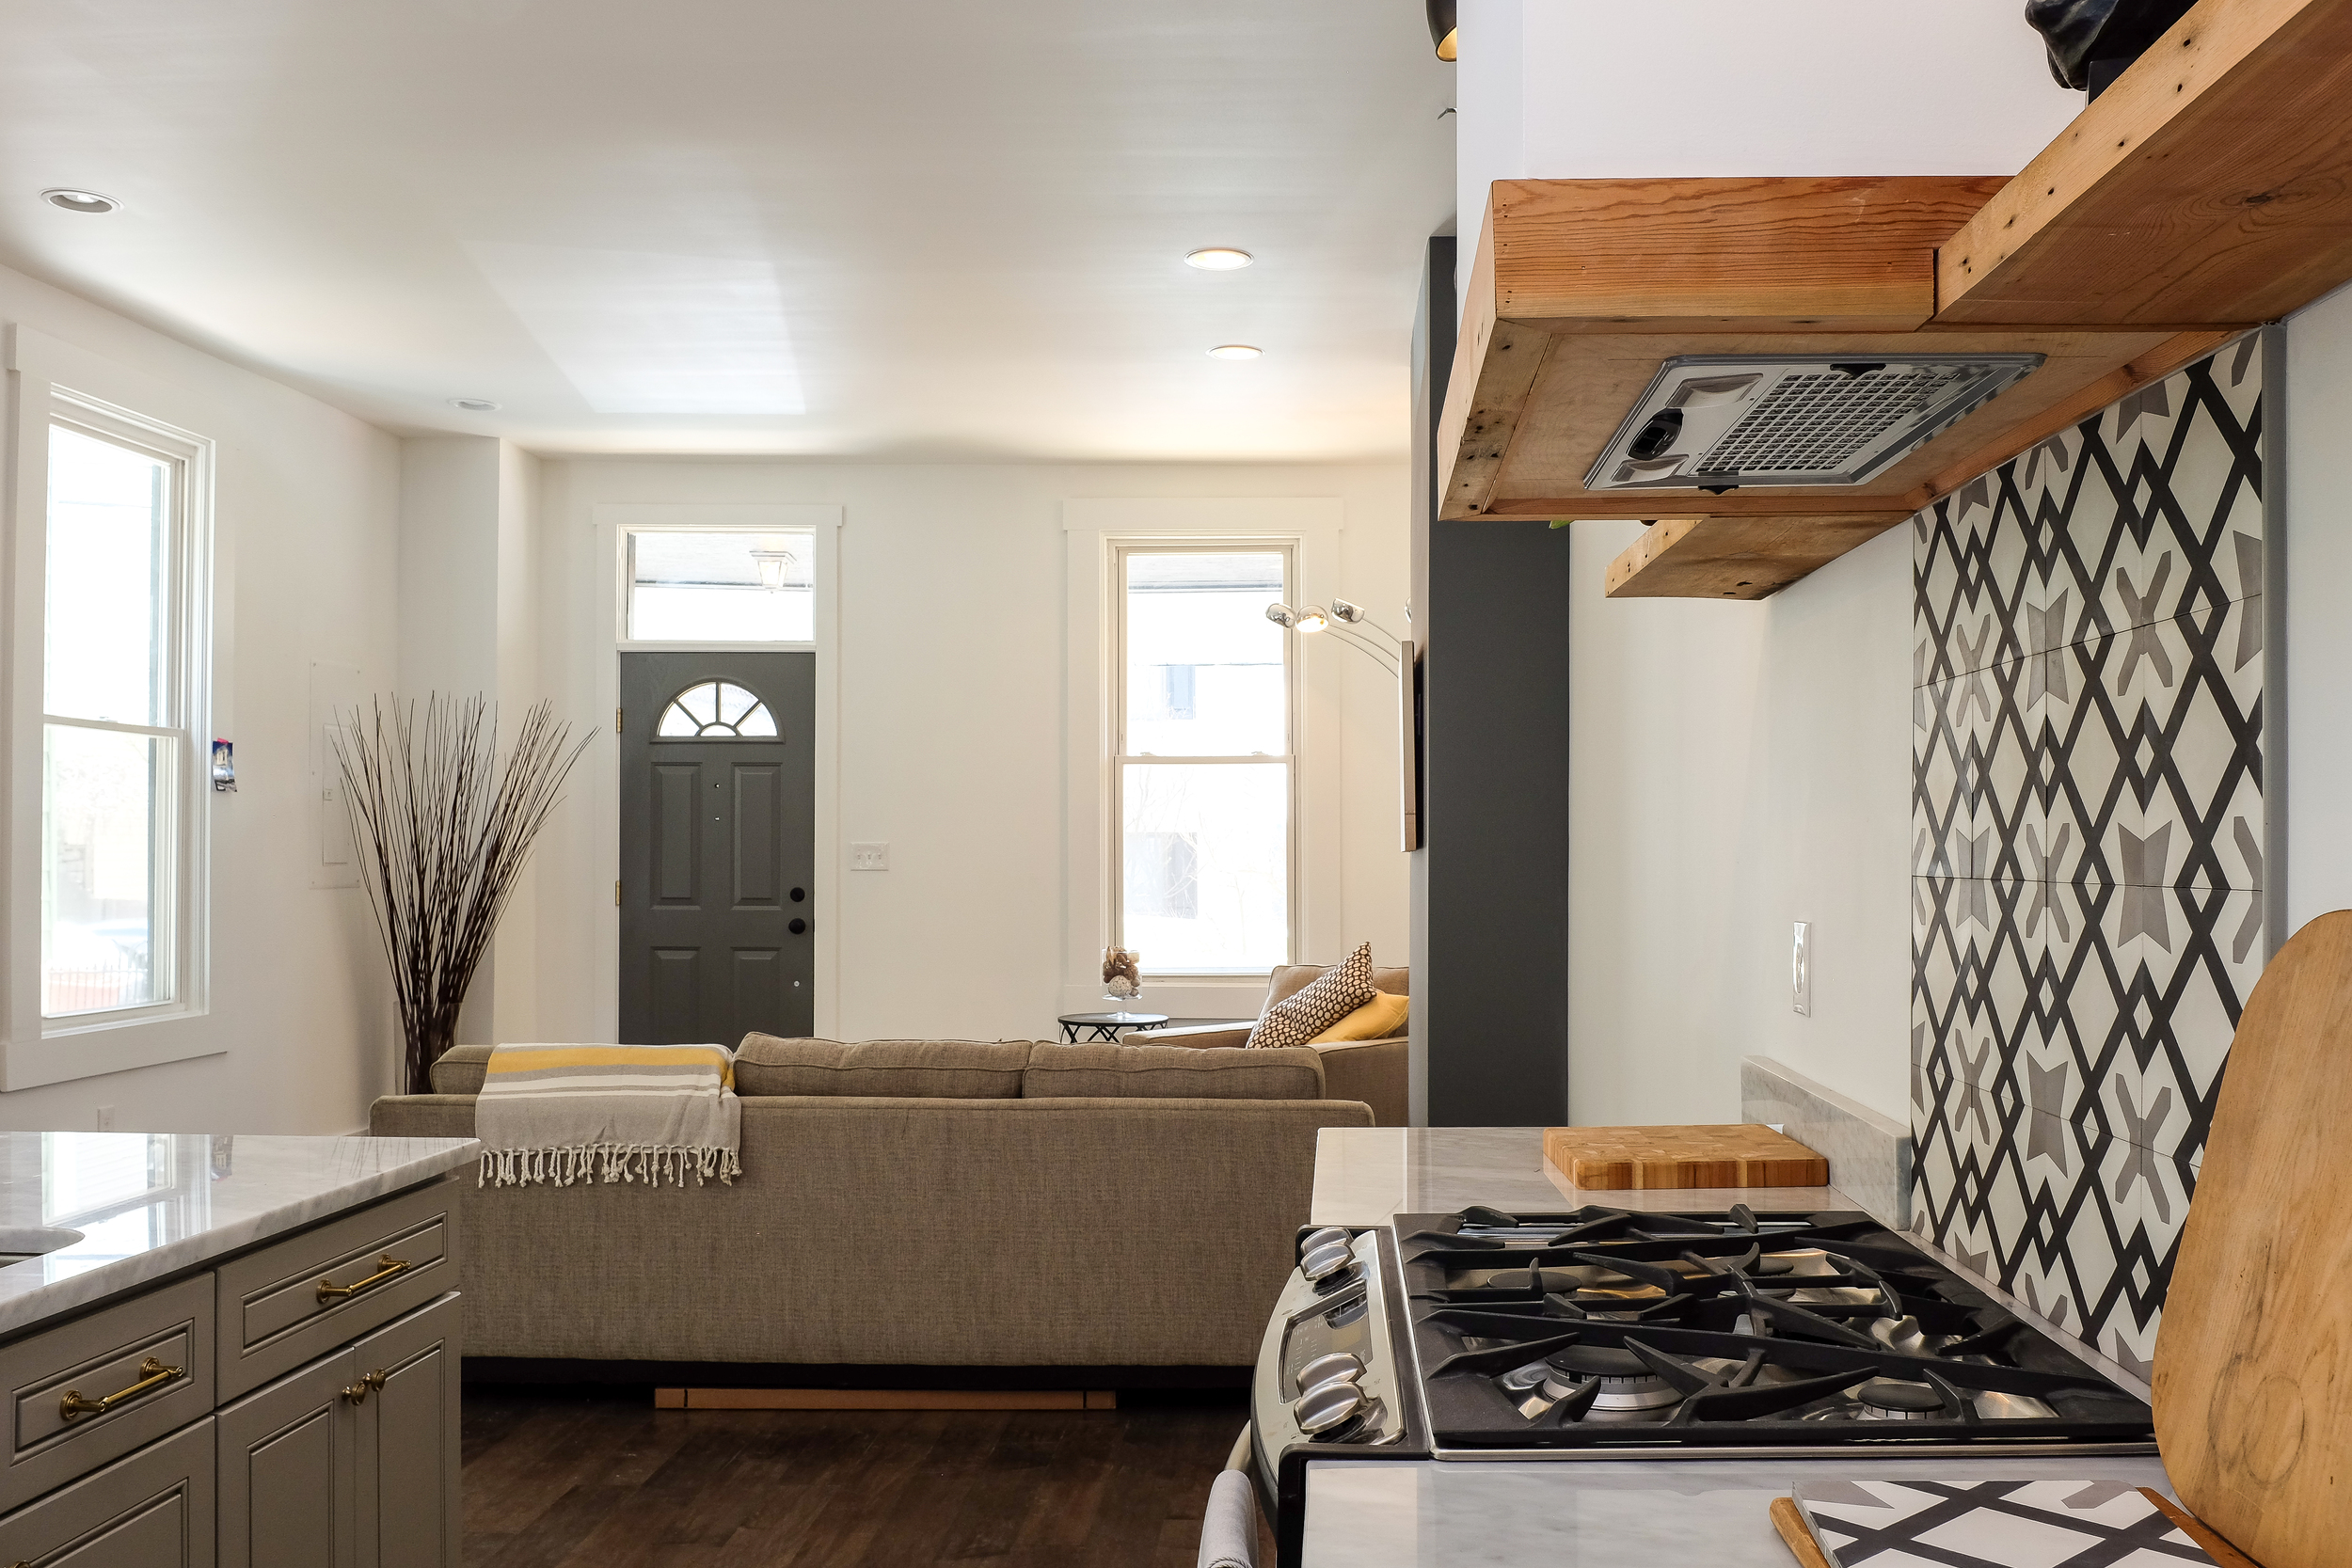 Custom kitchen range hood with floating salvaged wood shelves